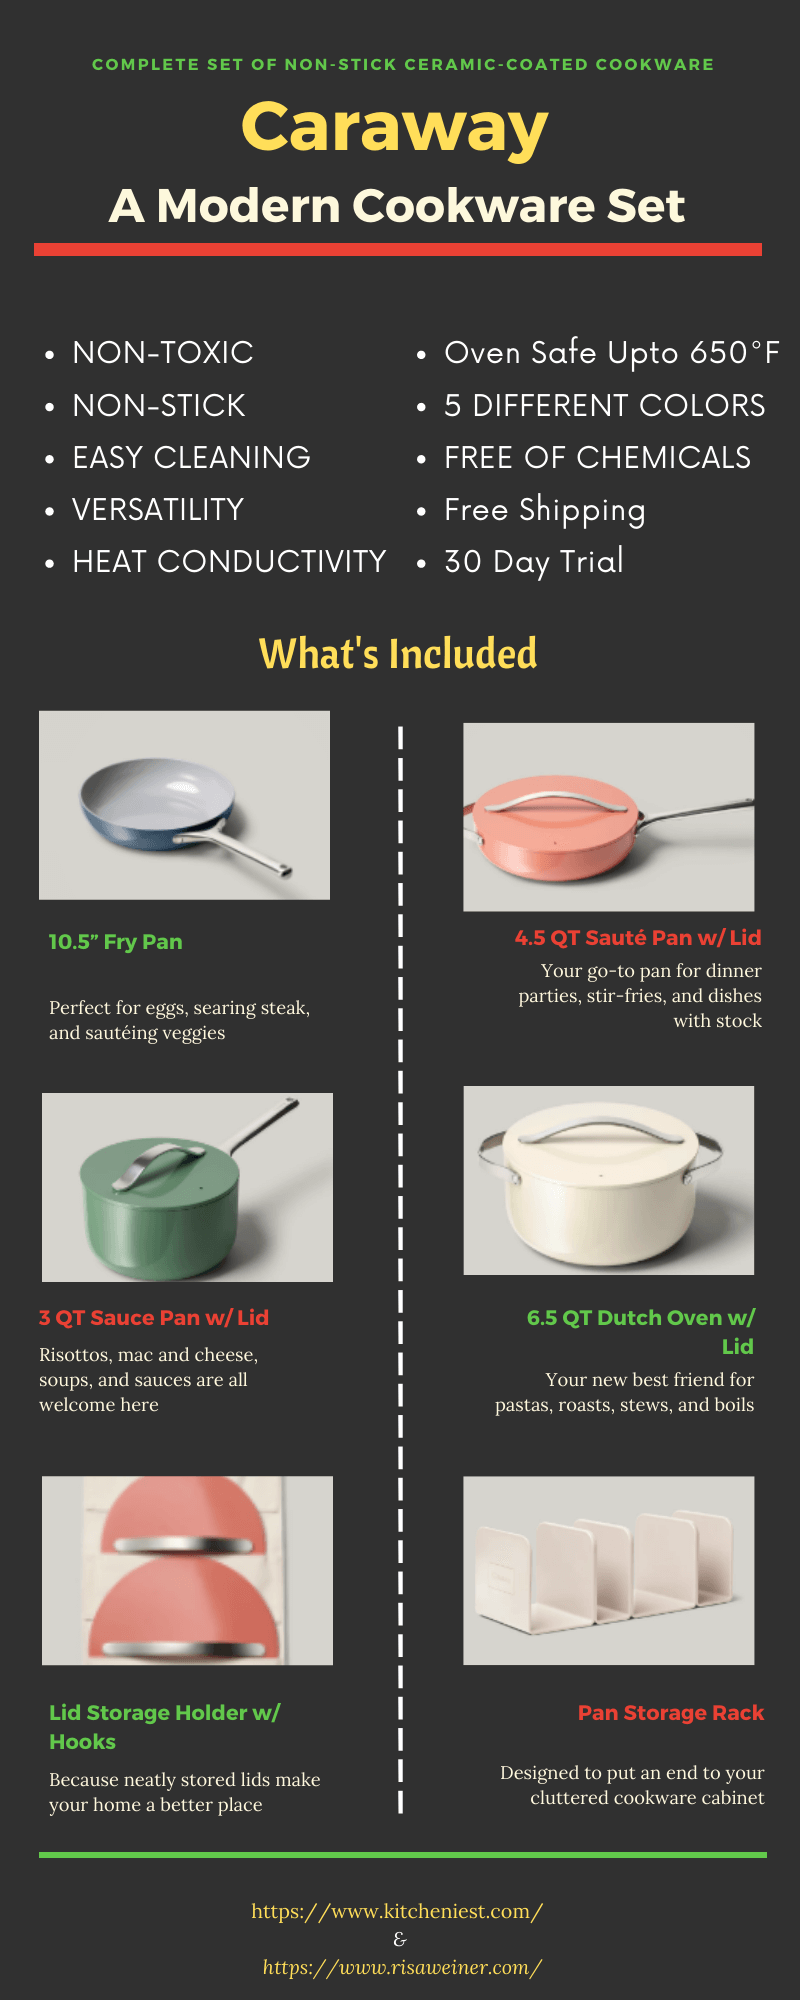 what is Caraway cookware